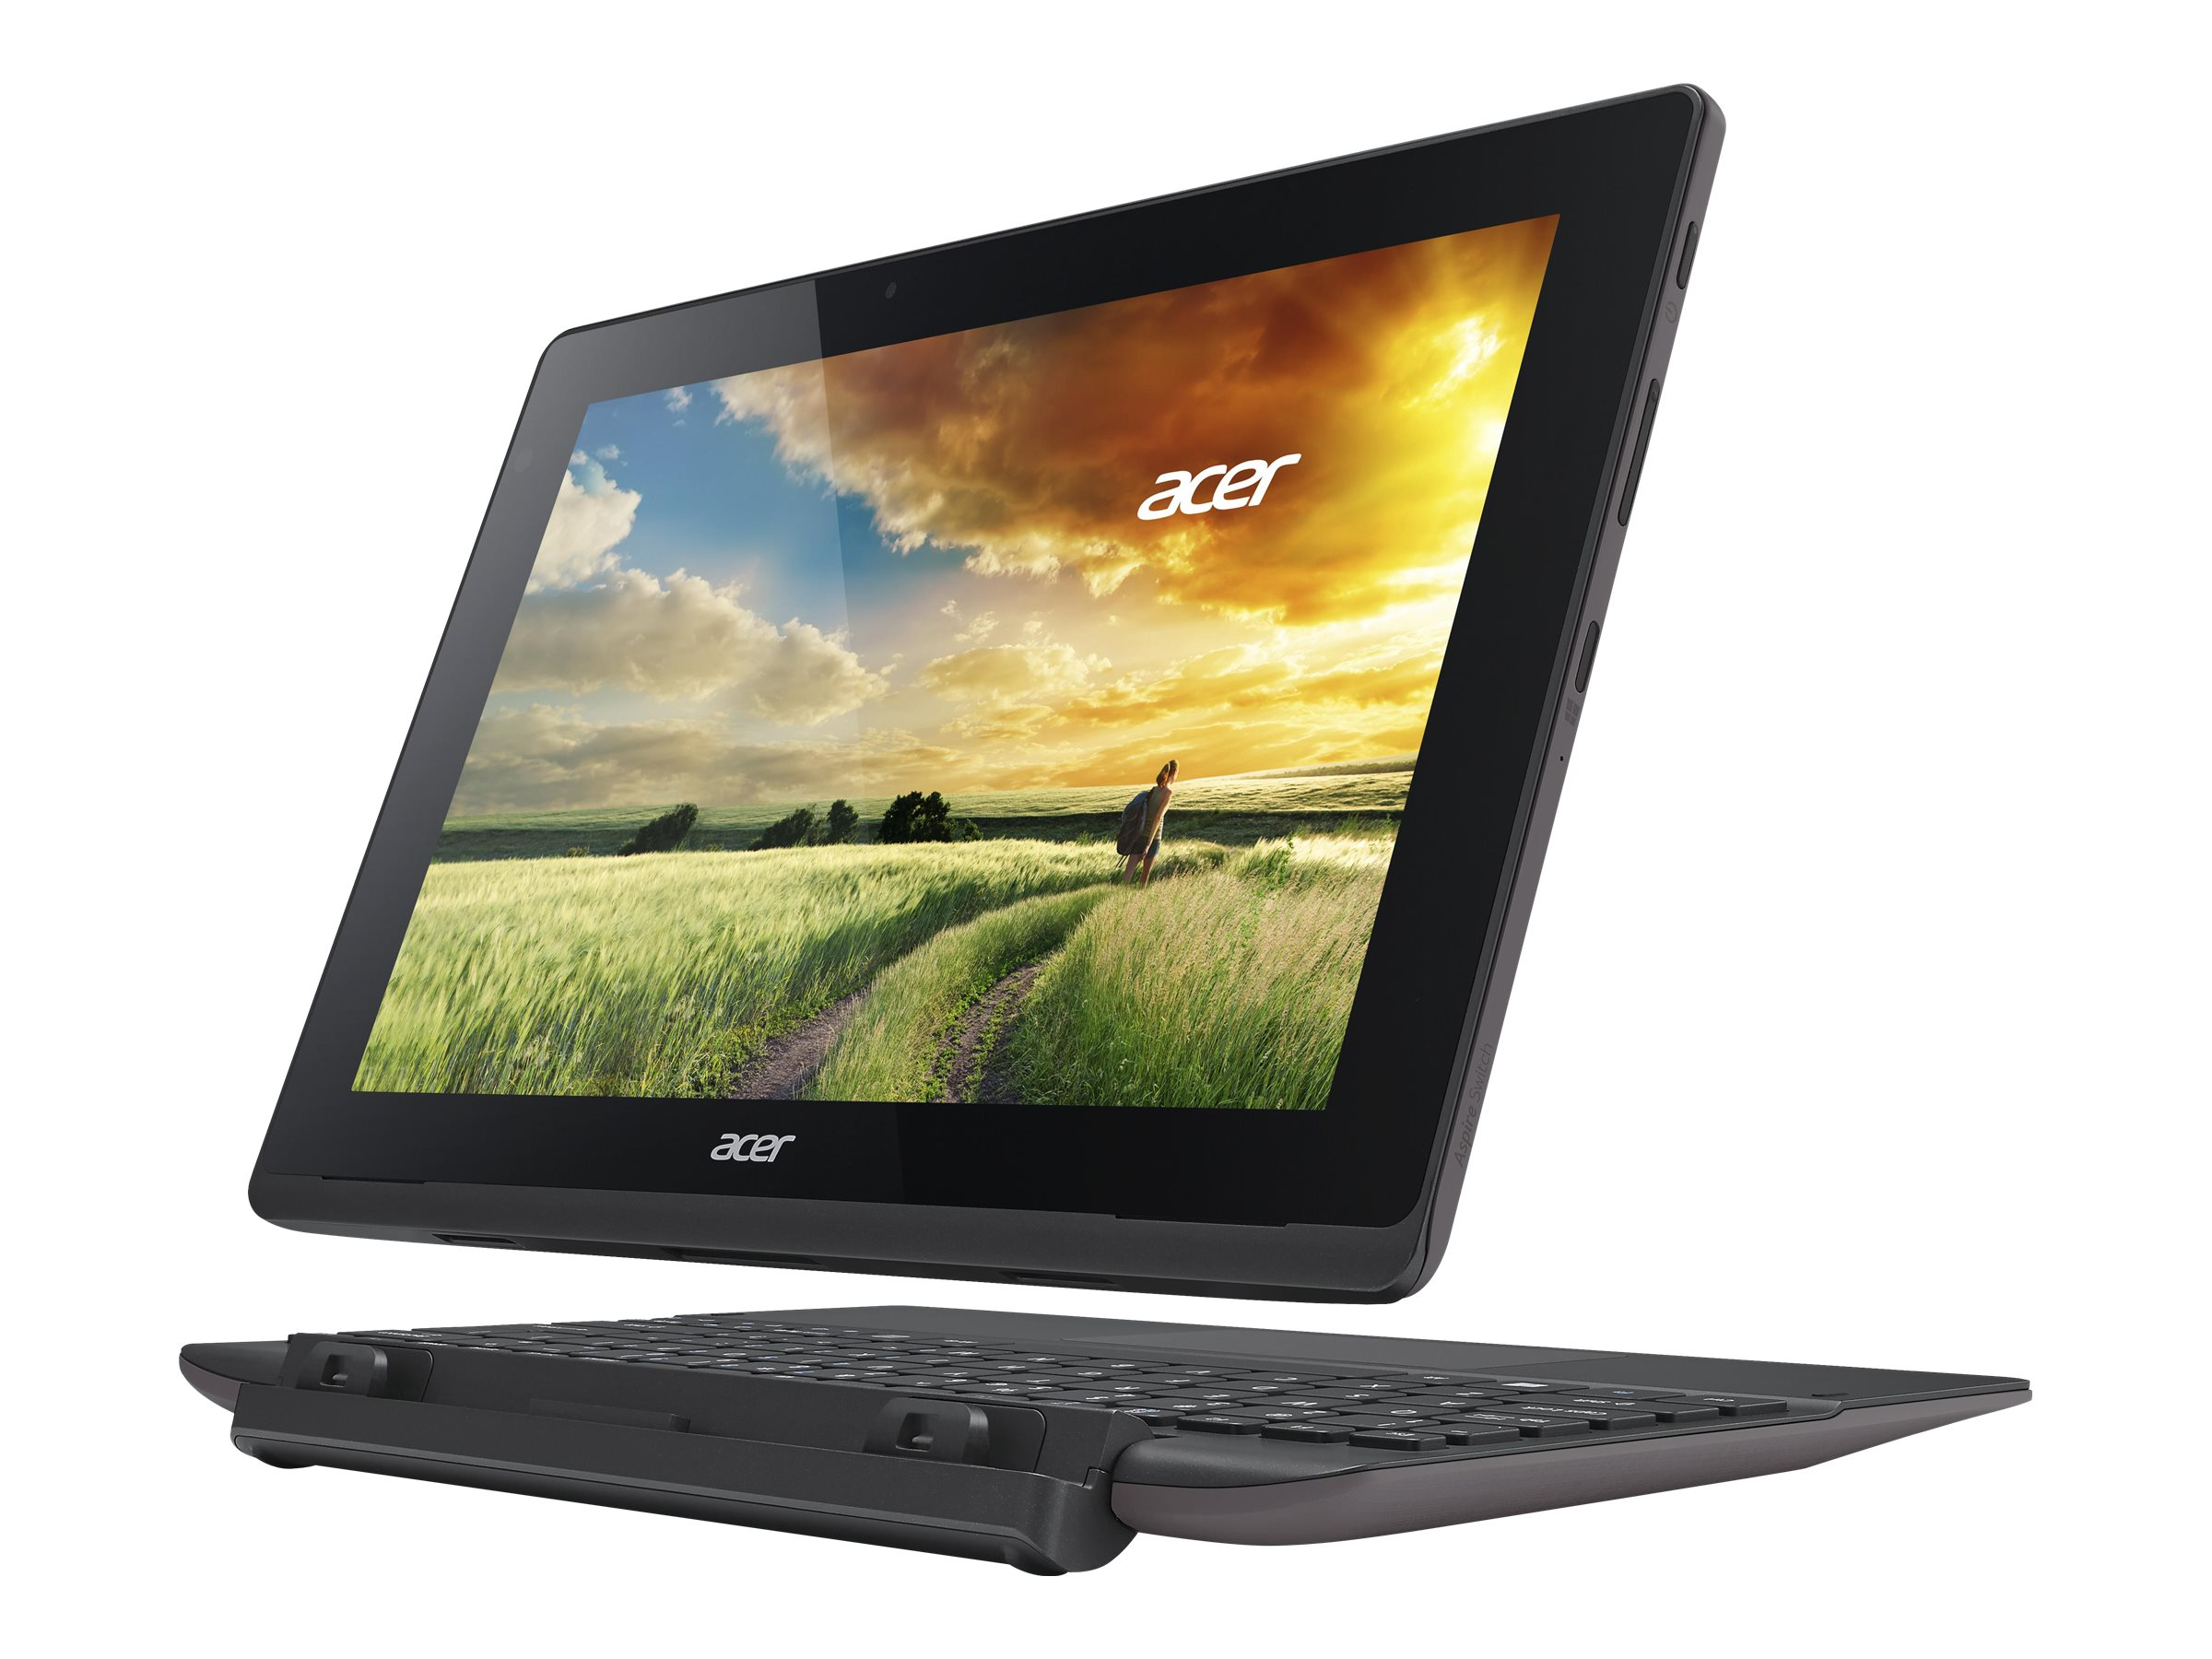 Acer Aspire Switch 10 E SW3-016-17R9 Atom x5-Z8300 1.44GHz 4GB 64GB abgn BT 2xWC 2C 10.1 WXGA MT W10H64